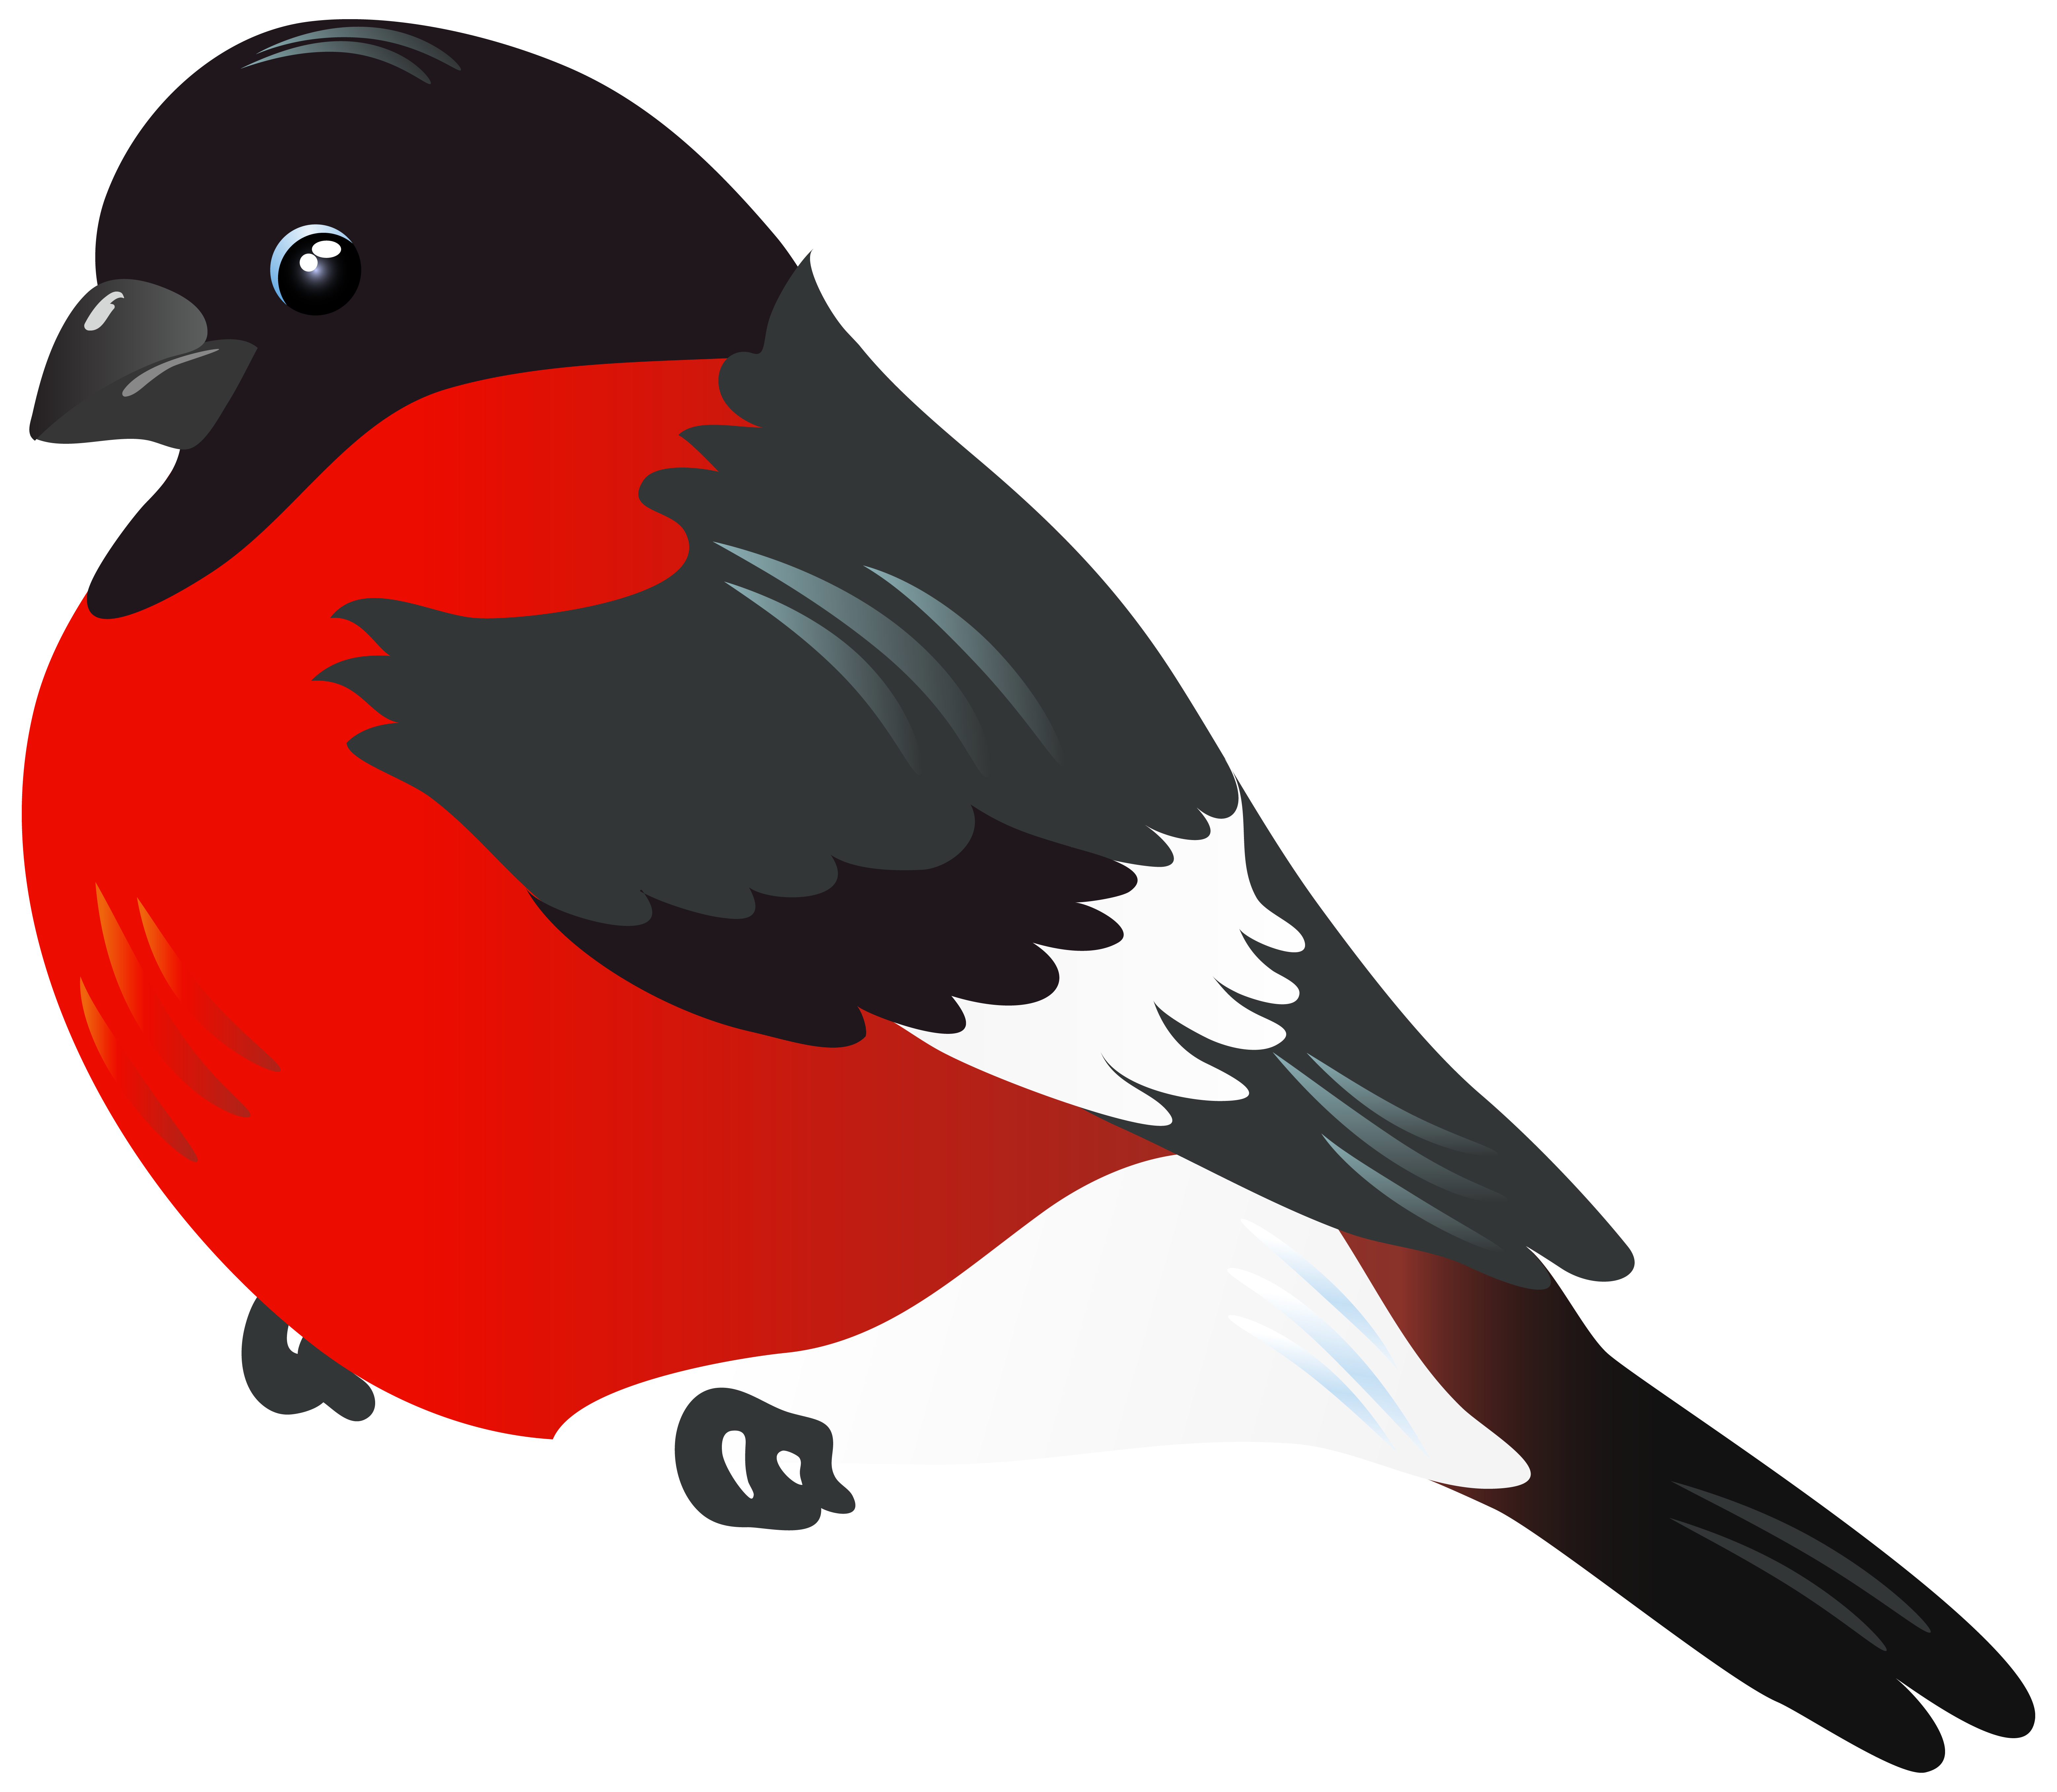 Red image gallery yopriceville. Bird clipart png banner download